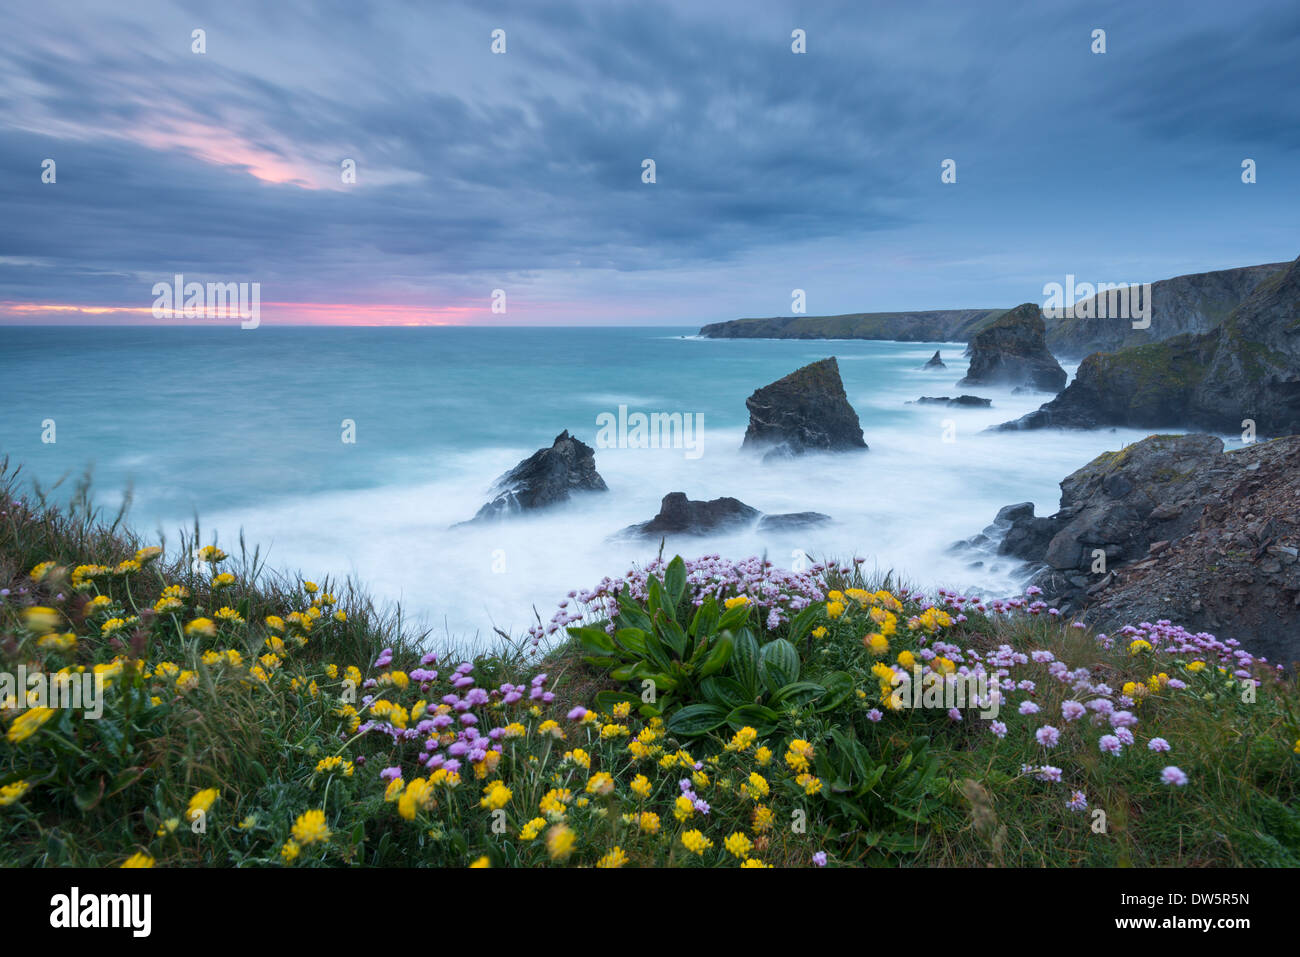 Wildflowers growing on the clifftops above Bedruthan Steps on a stormy evening, Cornwall, England. Spring (May) - Stock Image